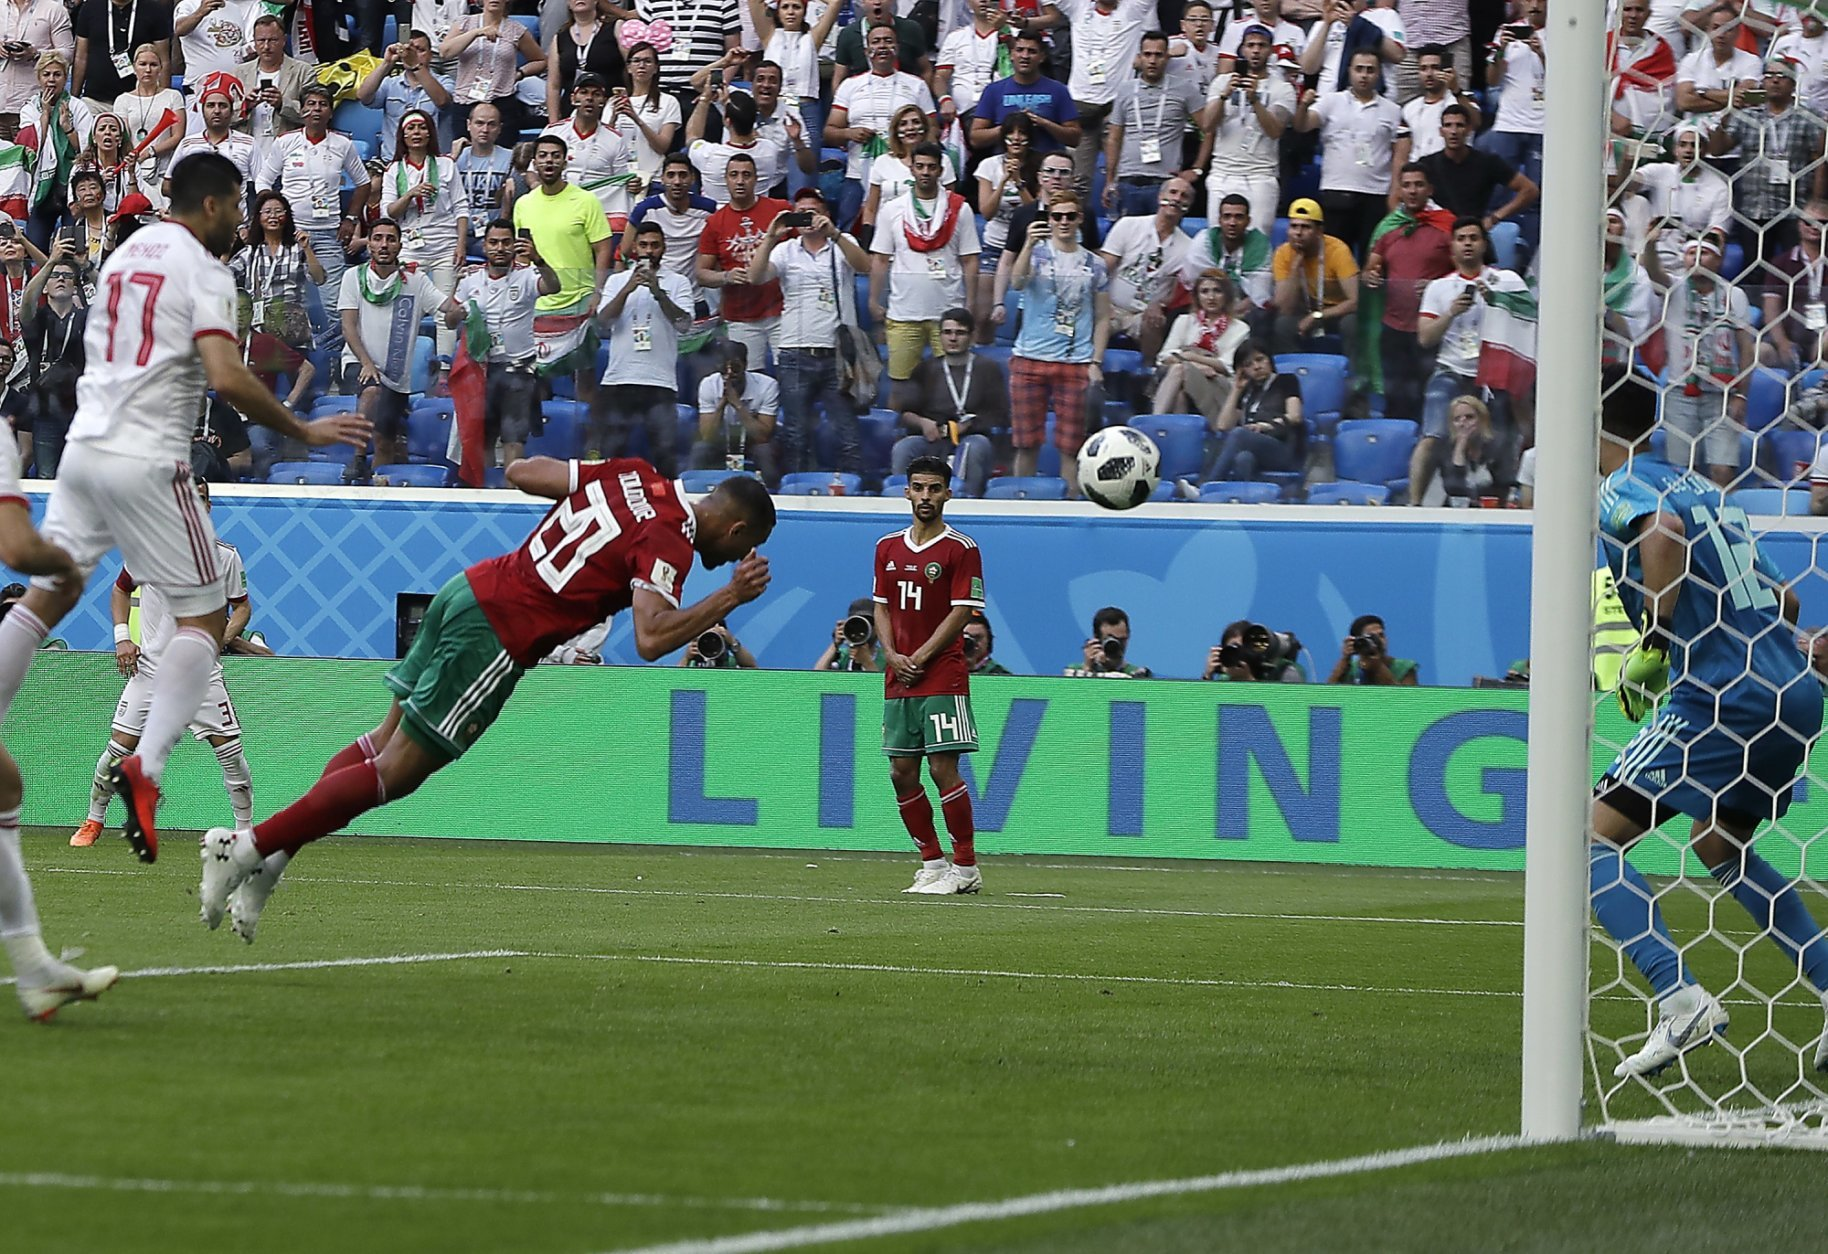 Morocco's Aziz Bouhaddouz, 20, scores an own goal during the group B match between Morocco and Iran at the 2018 soccer World Cup in the St. Petersburg Stadium in St. Petersburg, Russia, Friday, June 15, 2018. (AP Photo/Themba Hadebe)